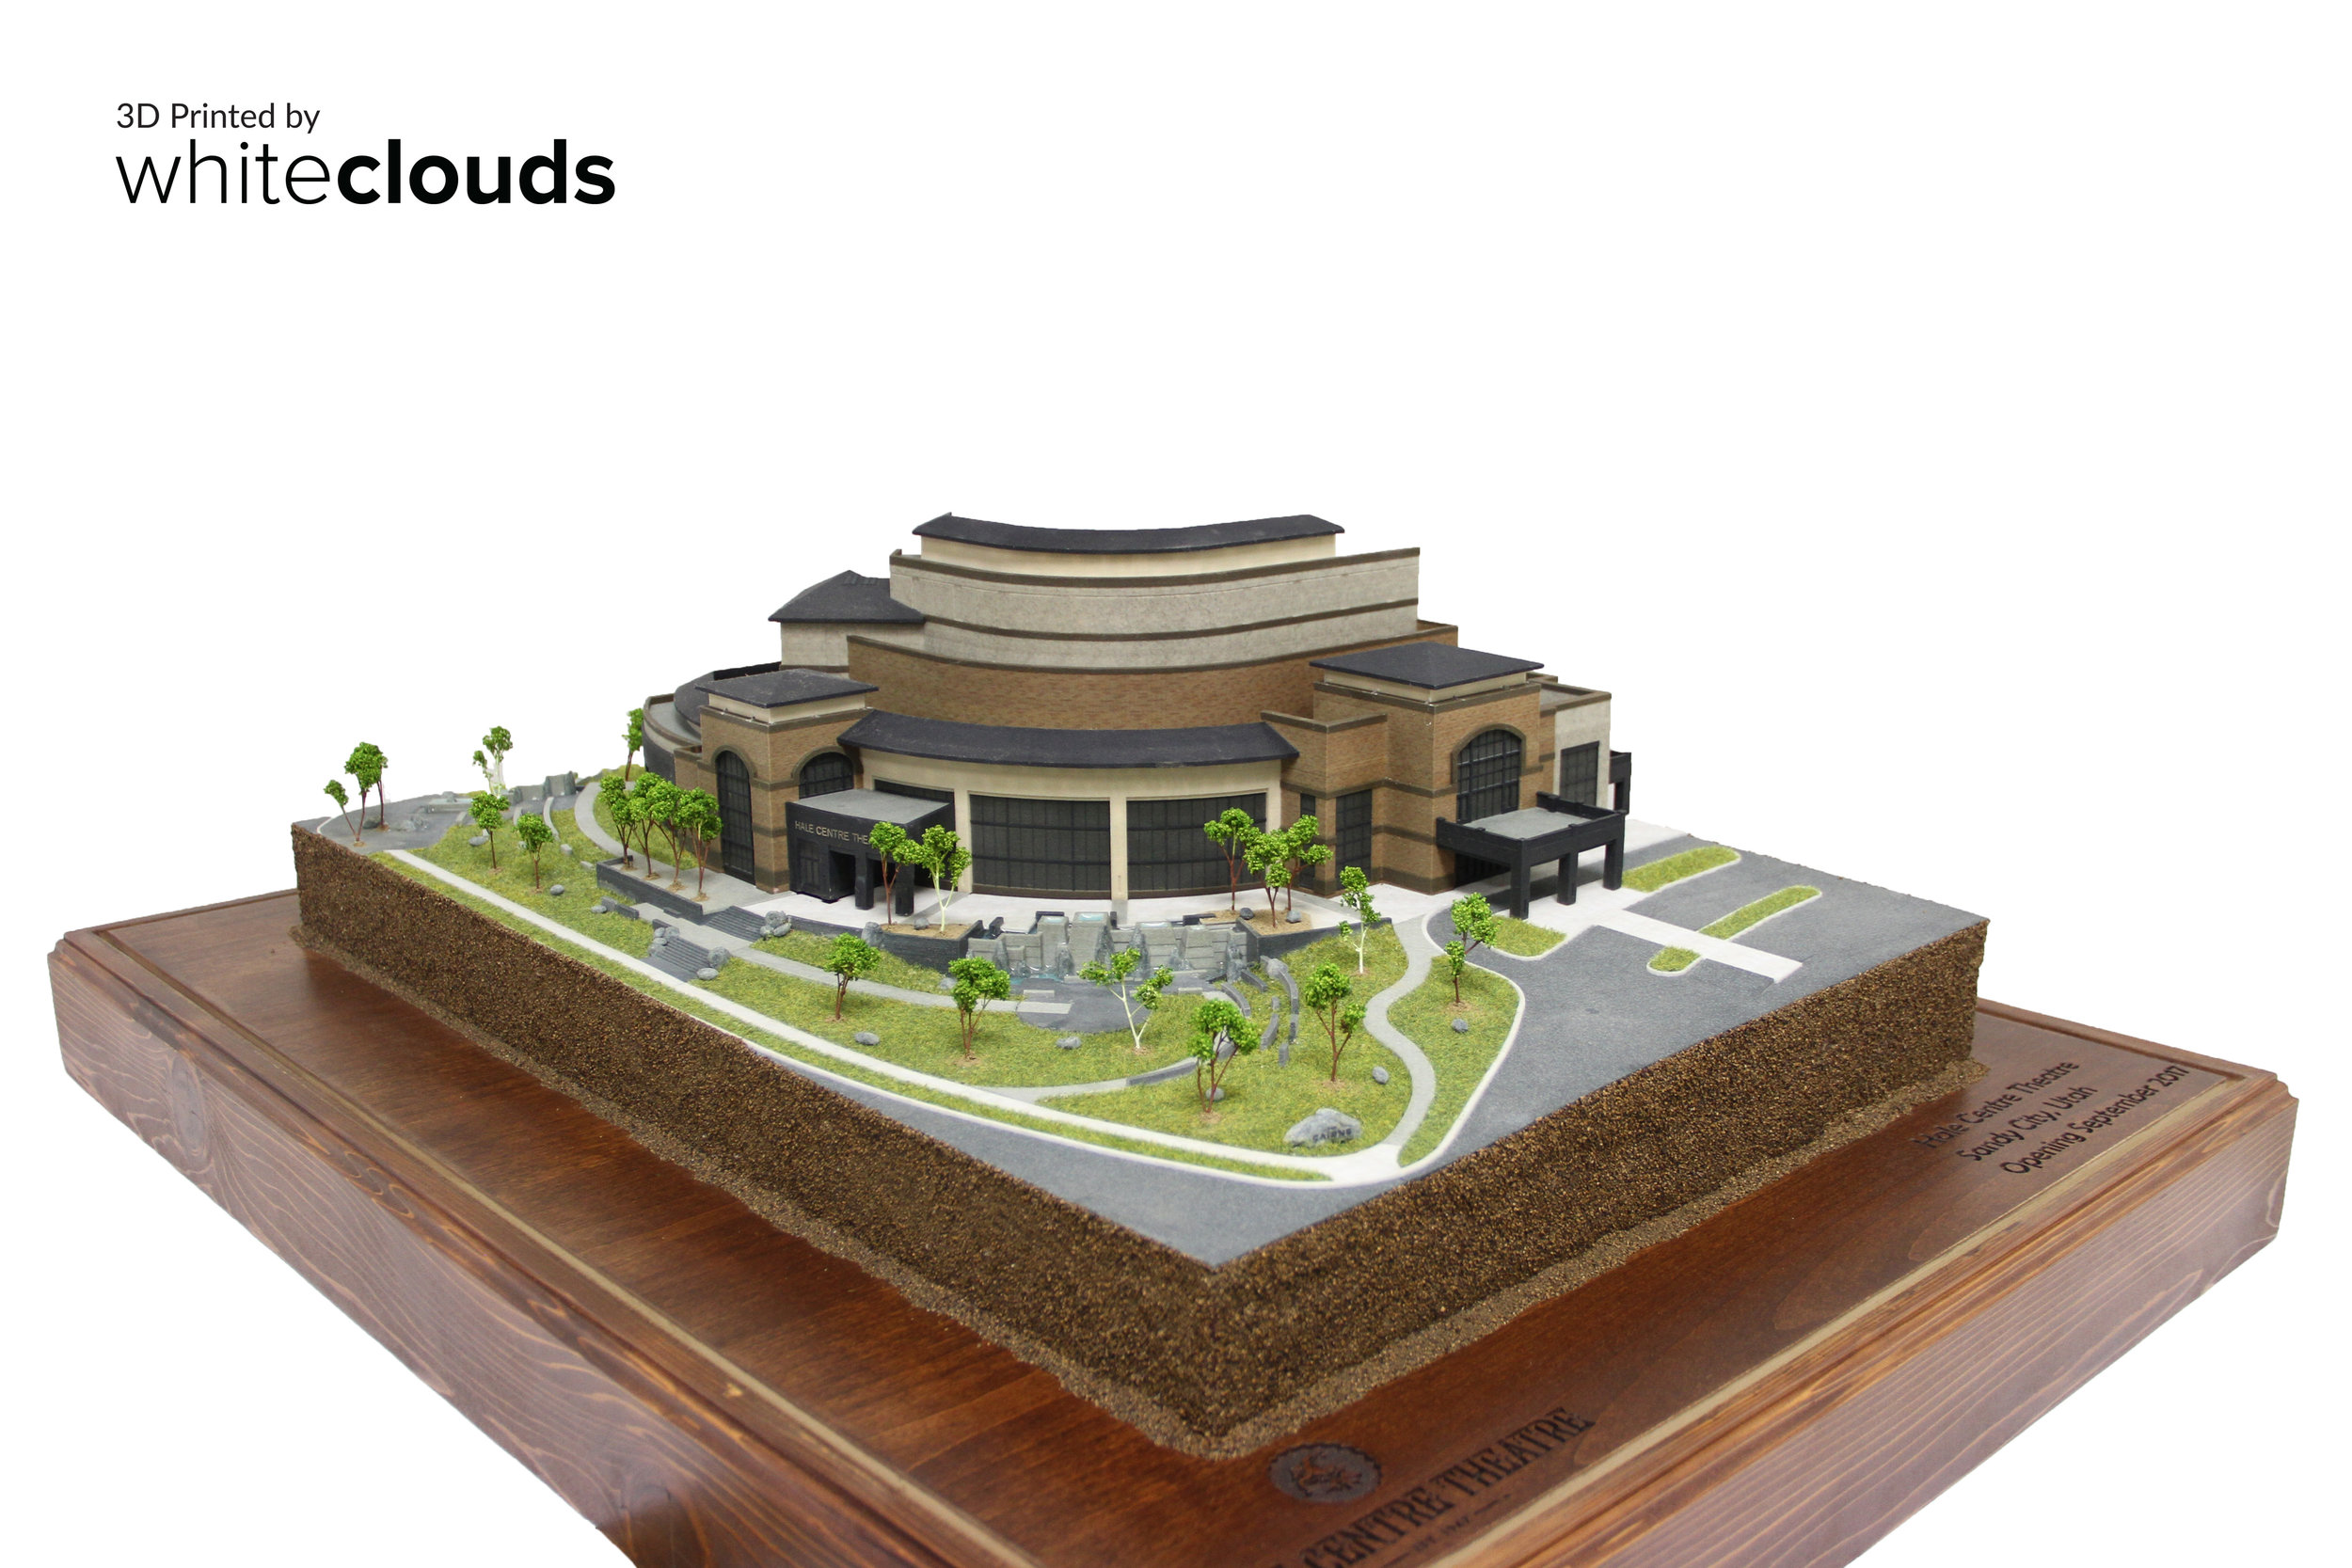 3D-Printed-WhiteClouds-Theater-Architectural-Hale-Center-Theater-1.JPG